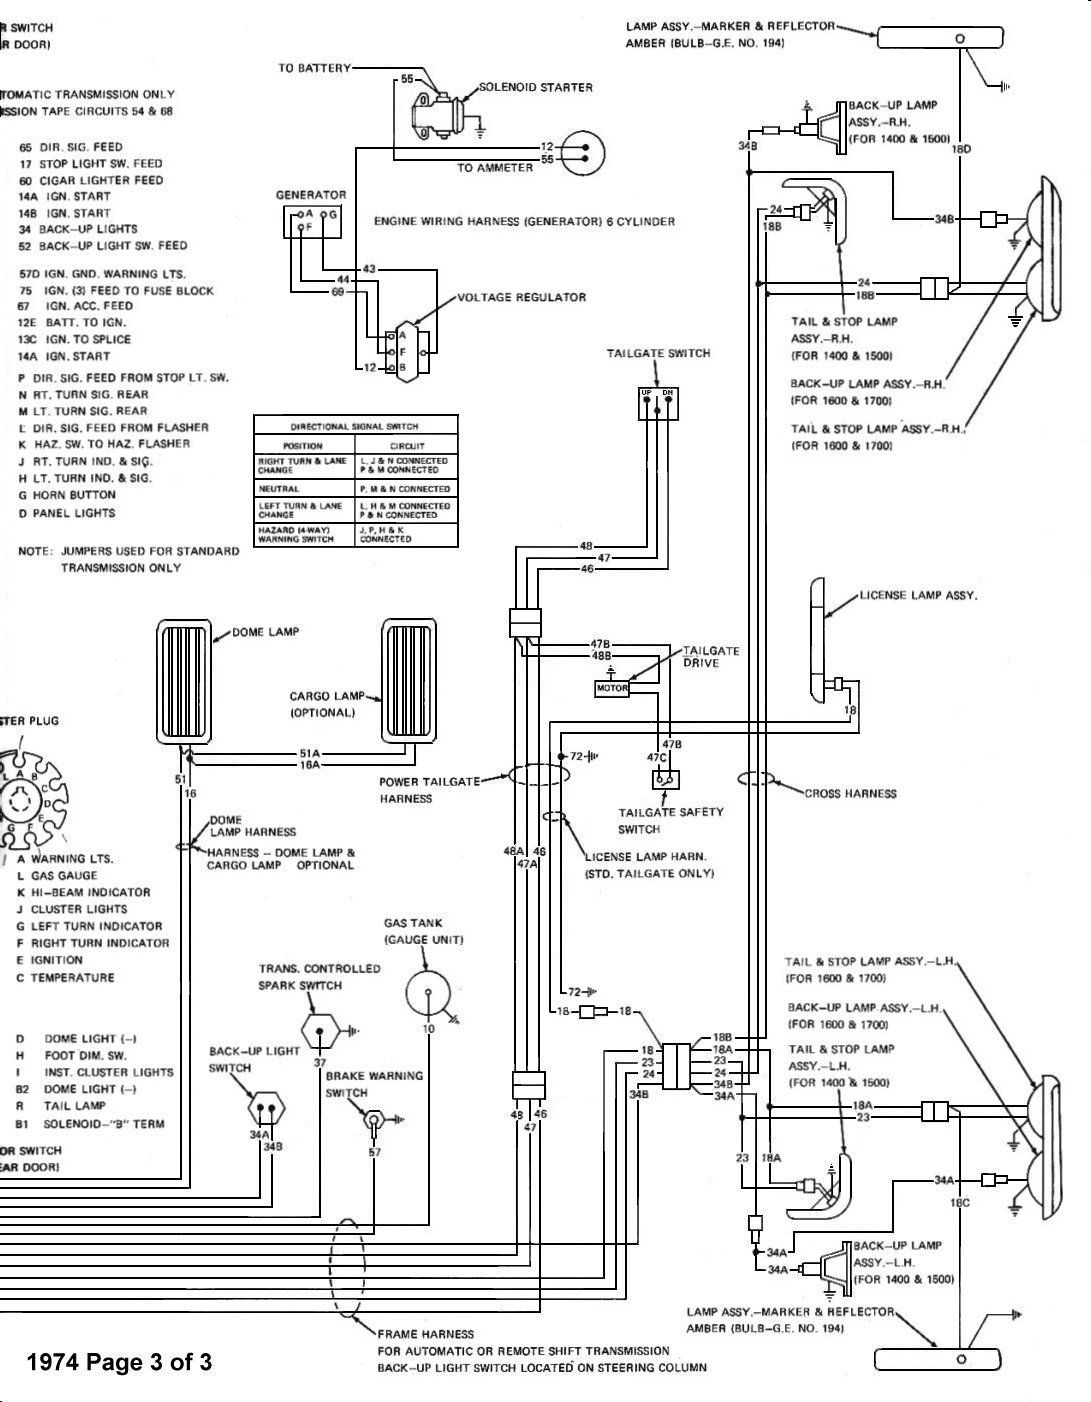 96 Jeep Cherokee Wiring Diagram : 31 Wiring Diagram Images